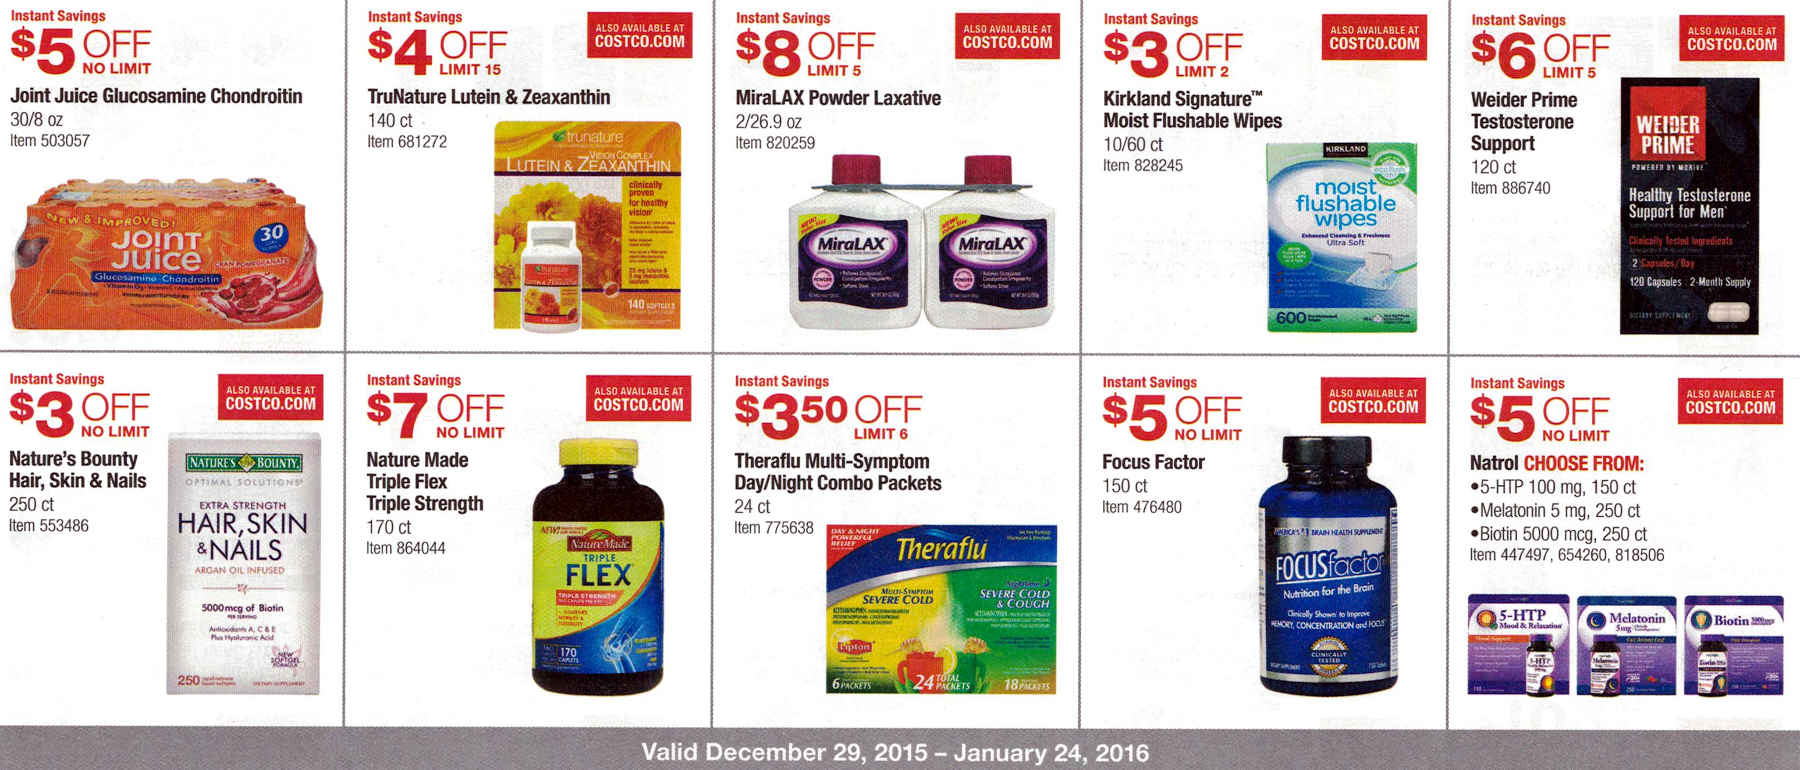 January 2016 Costco Coupon Book Page 7